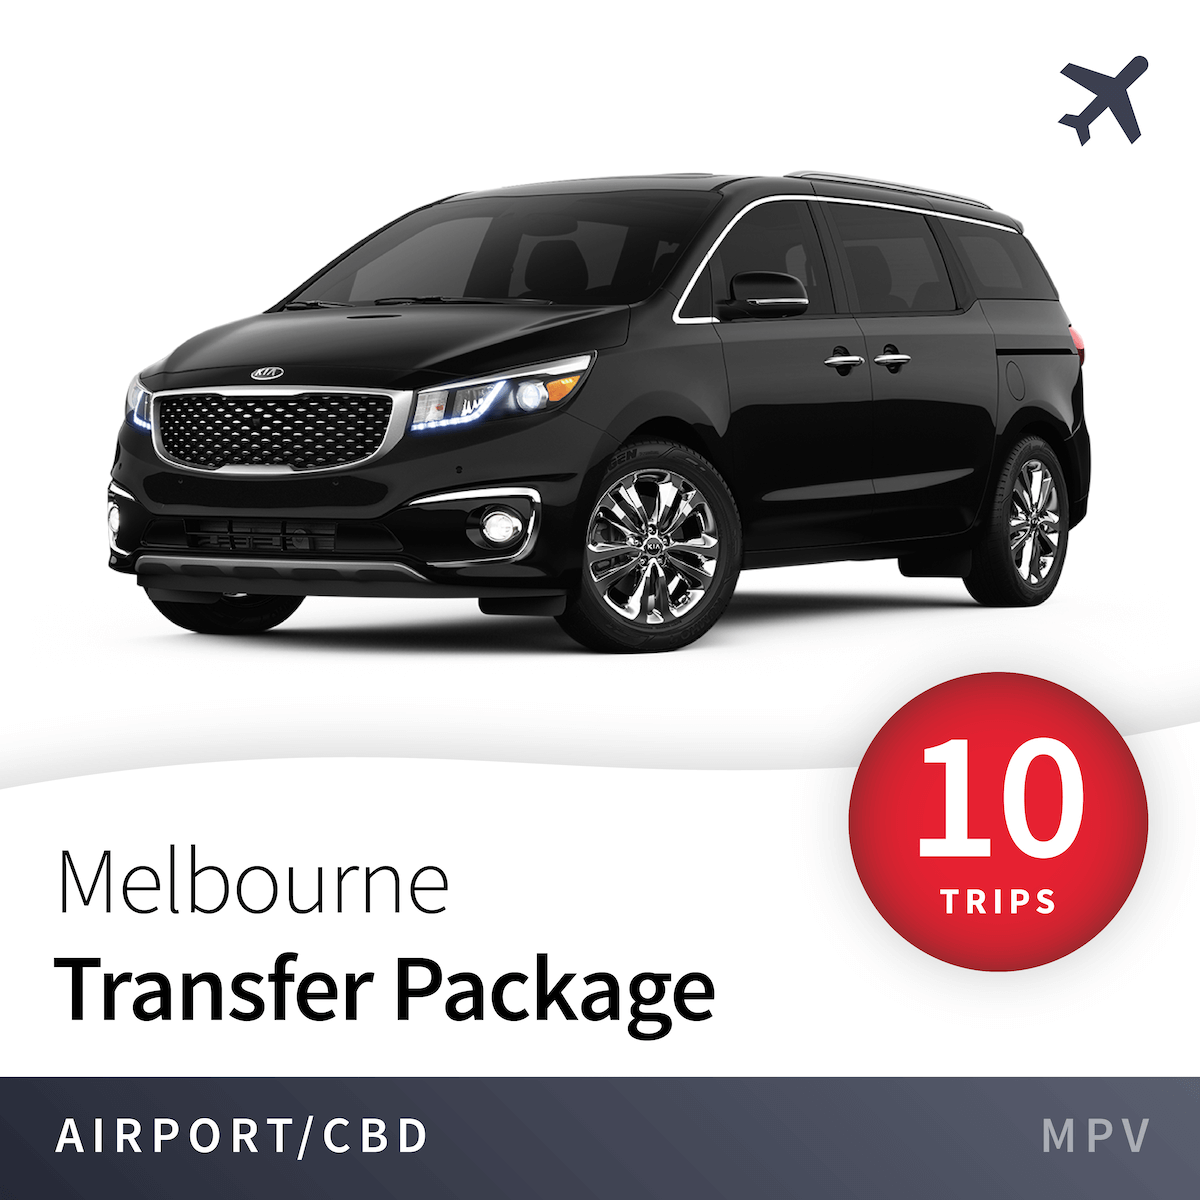 Melbourne Airport Transfer Package - MPV (10 Trips) 9